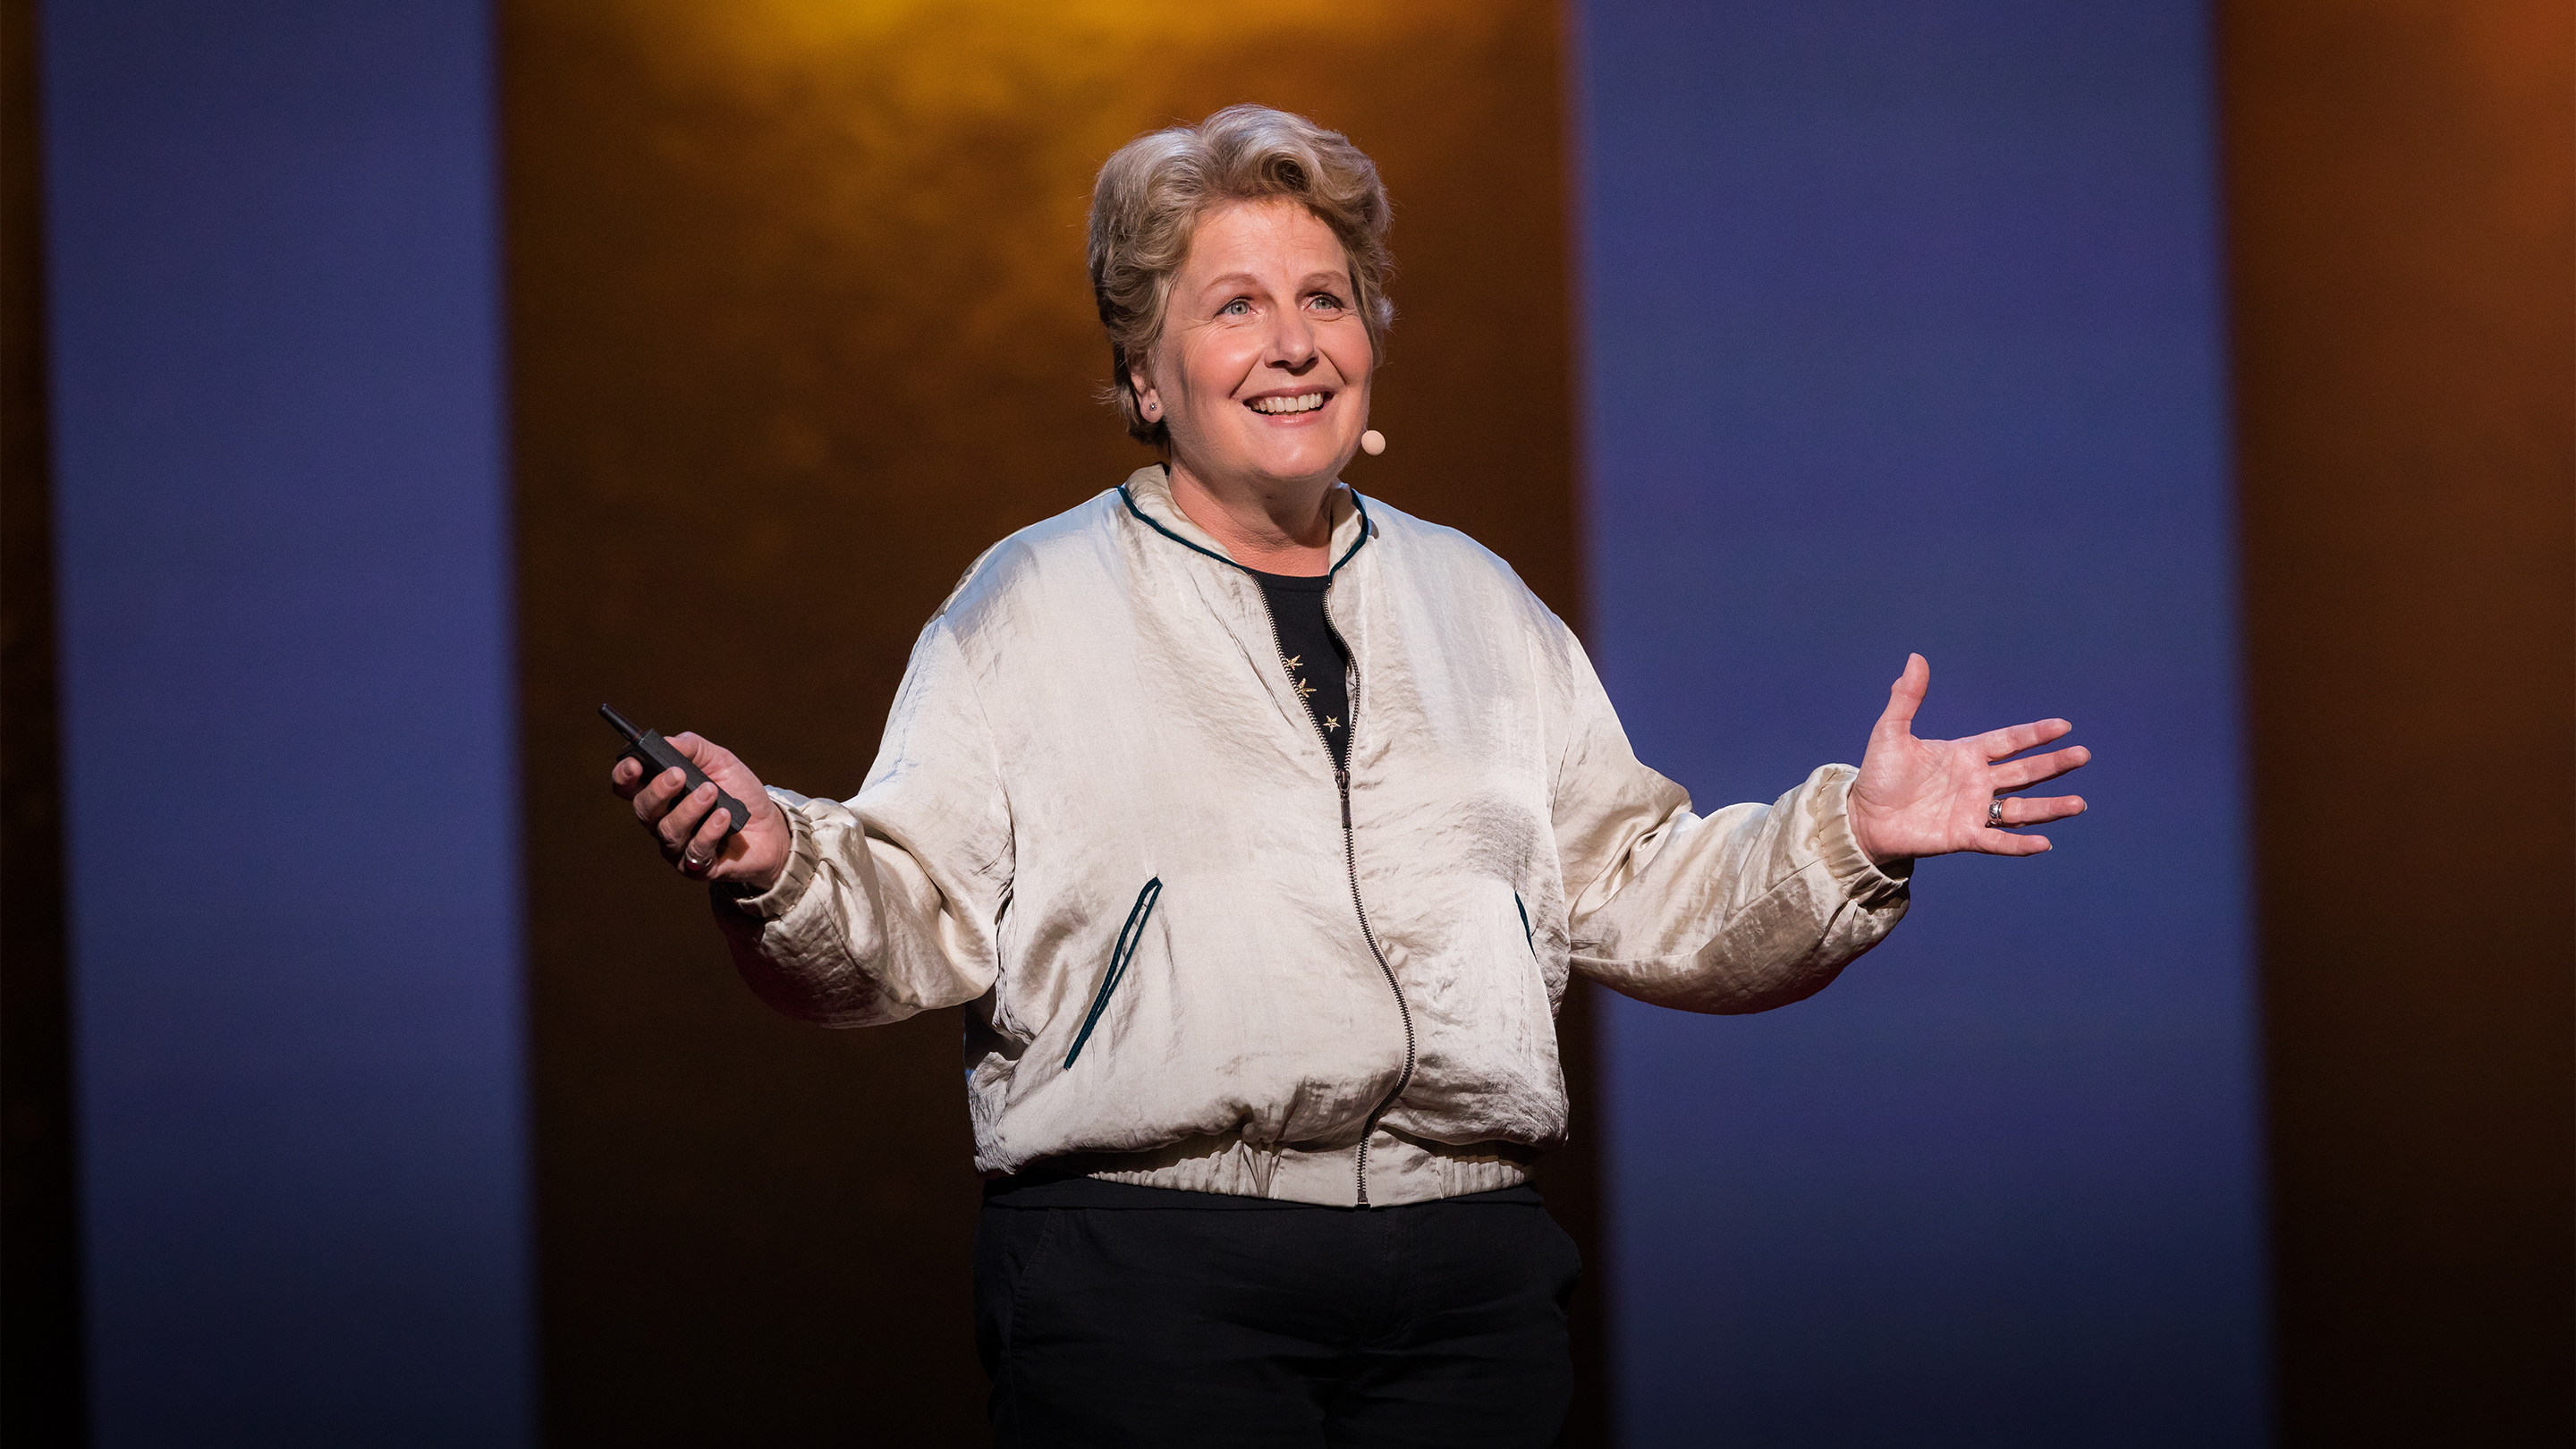 Sandi Toksvig: A political party for women's equality thumbnail